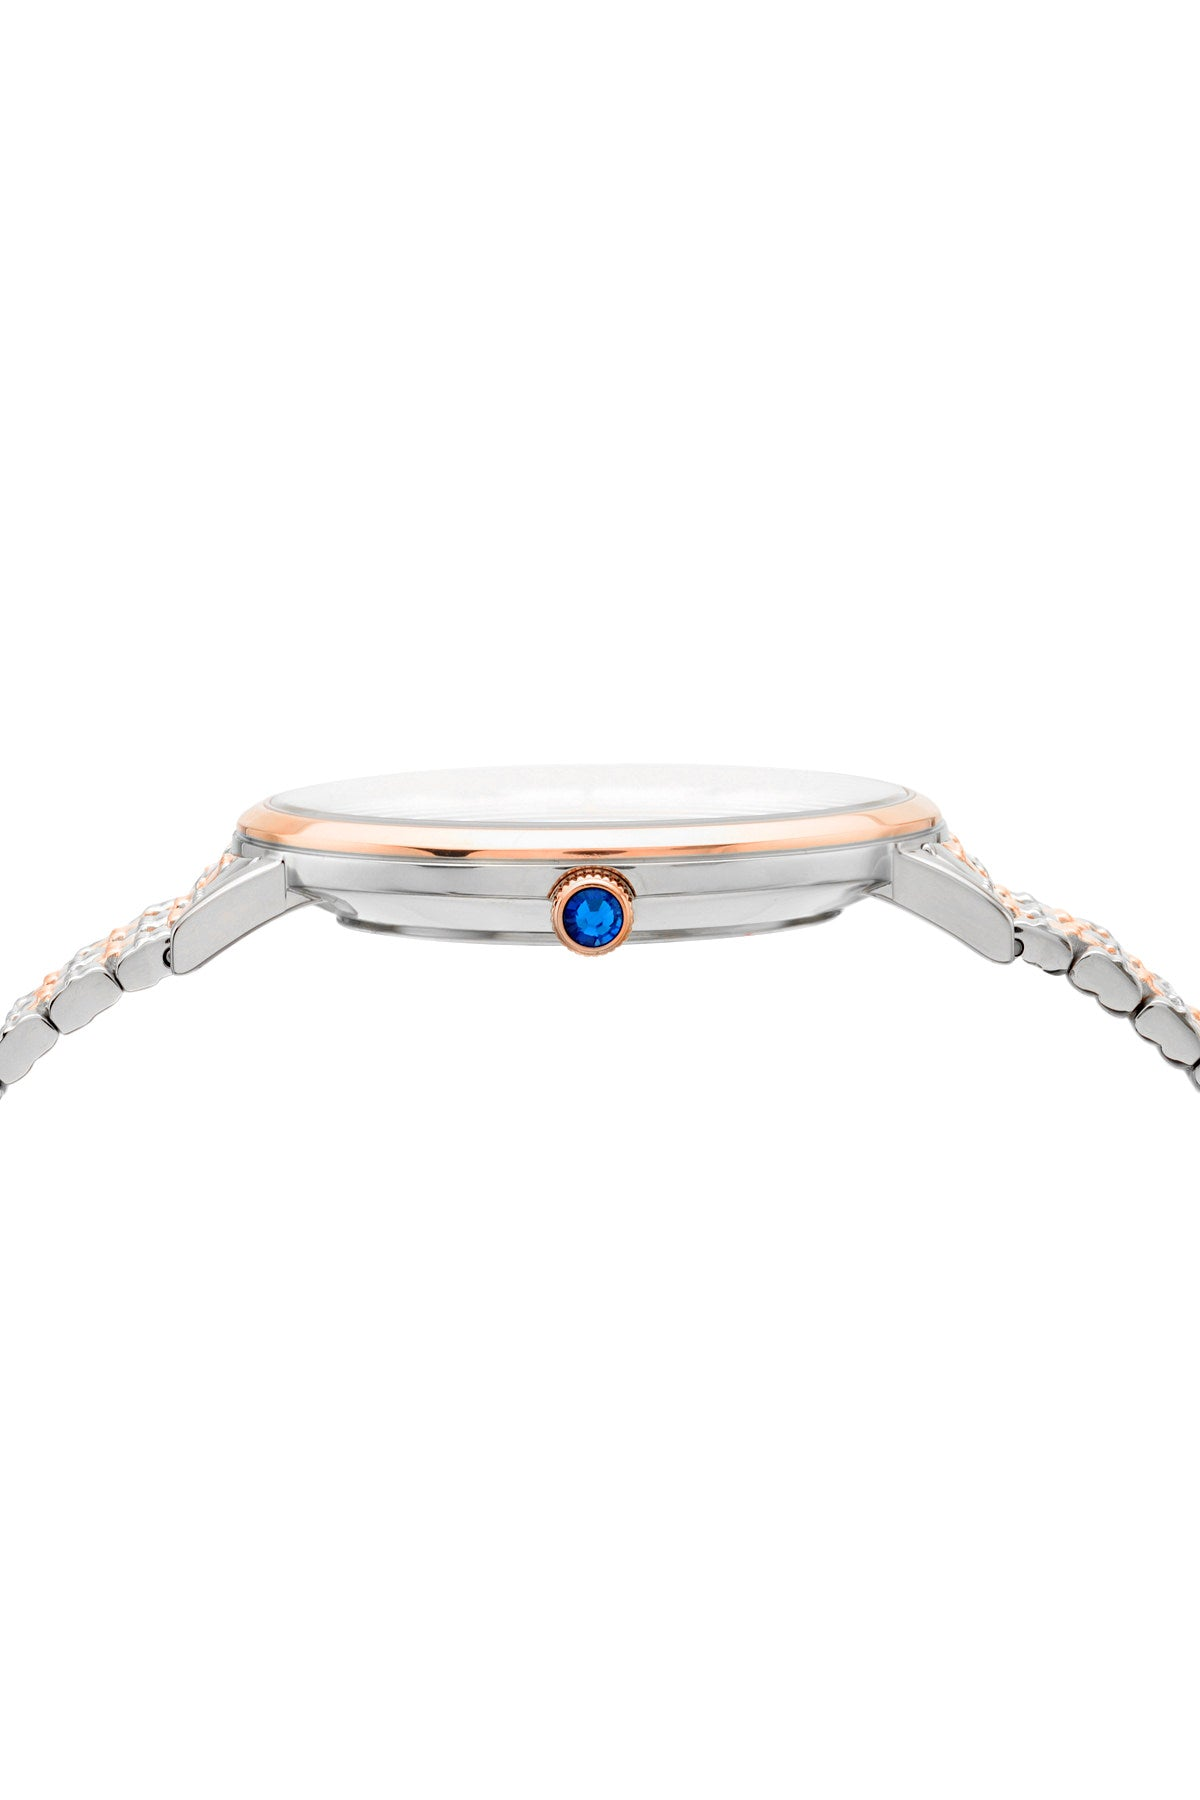 Porsamo Bleu Antonia luxury slim women's stainless steel watch, silver, rose 432BANS